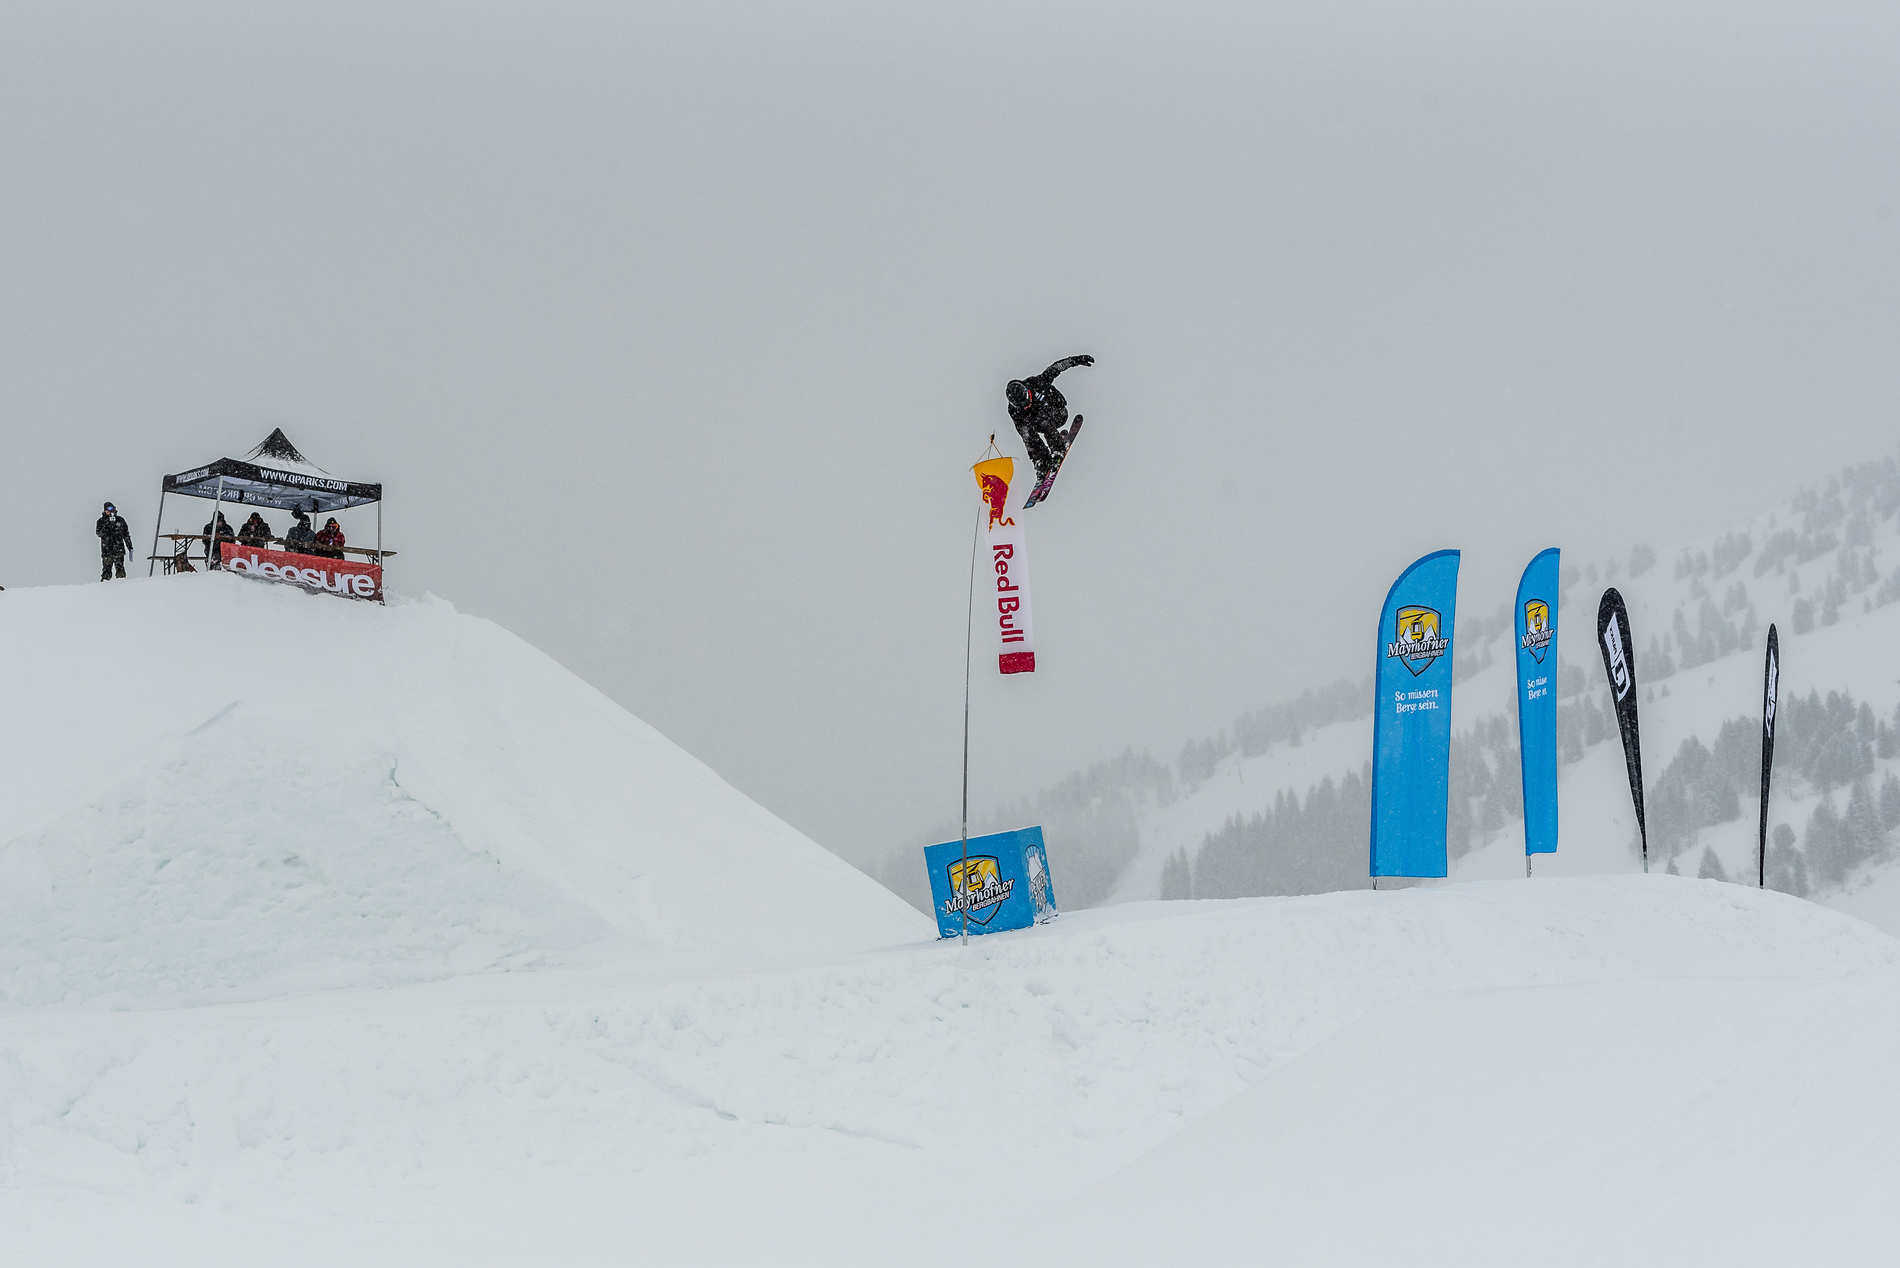 web mayrhofen 03 02 2018 action fs unknown rider christian riefenberg qparks 7